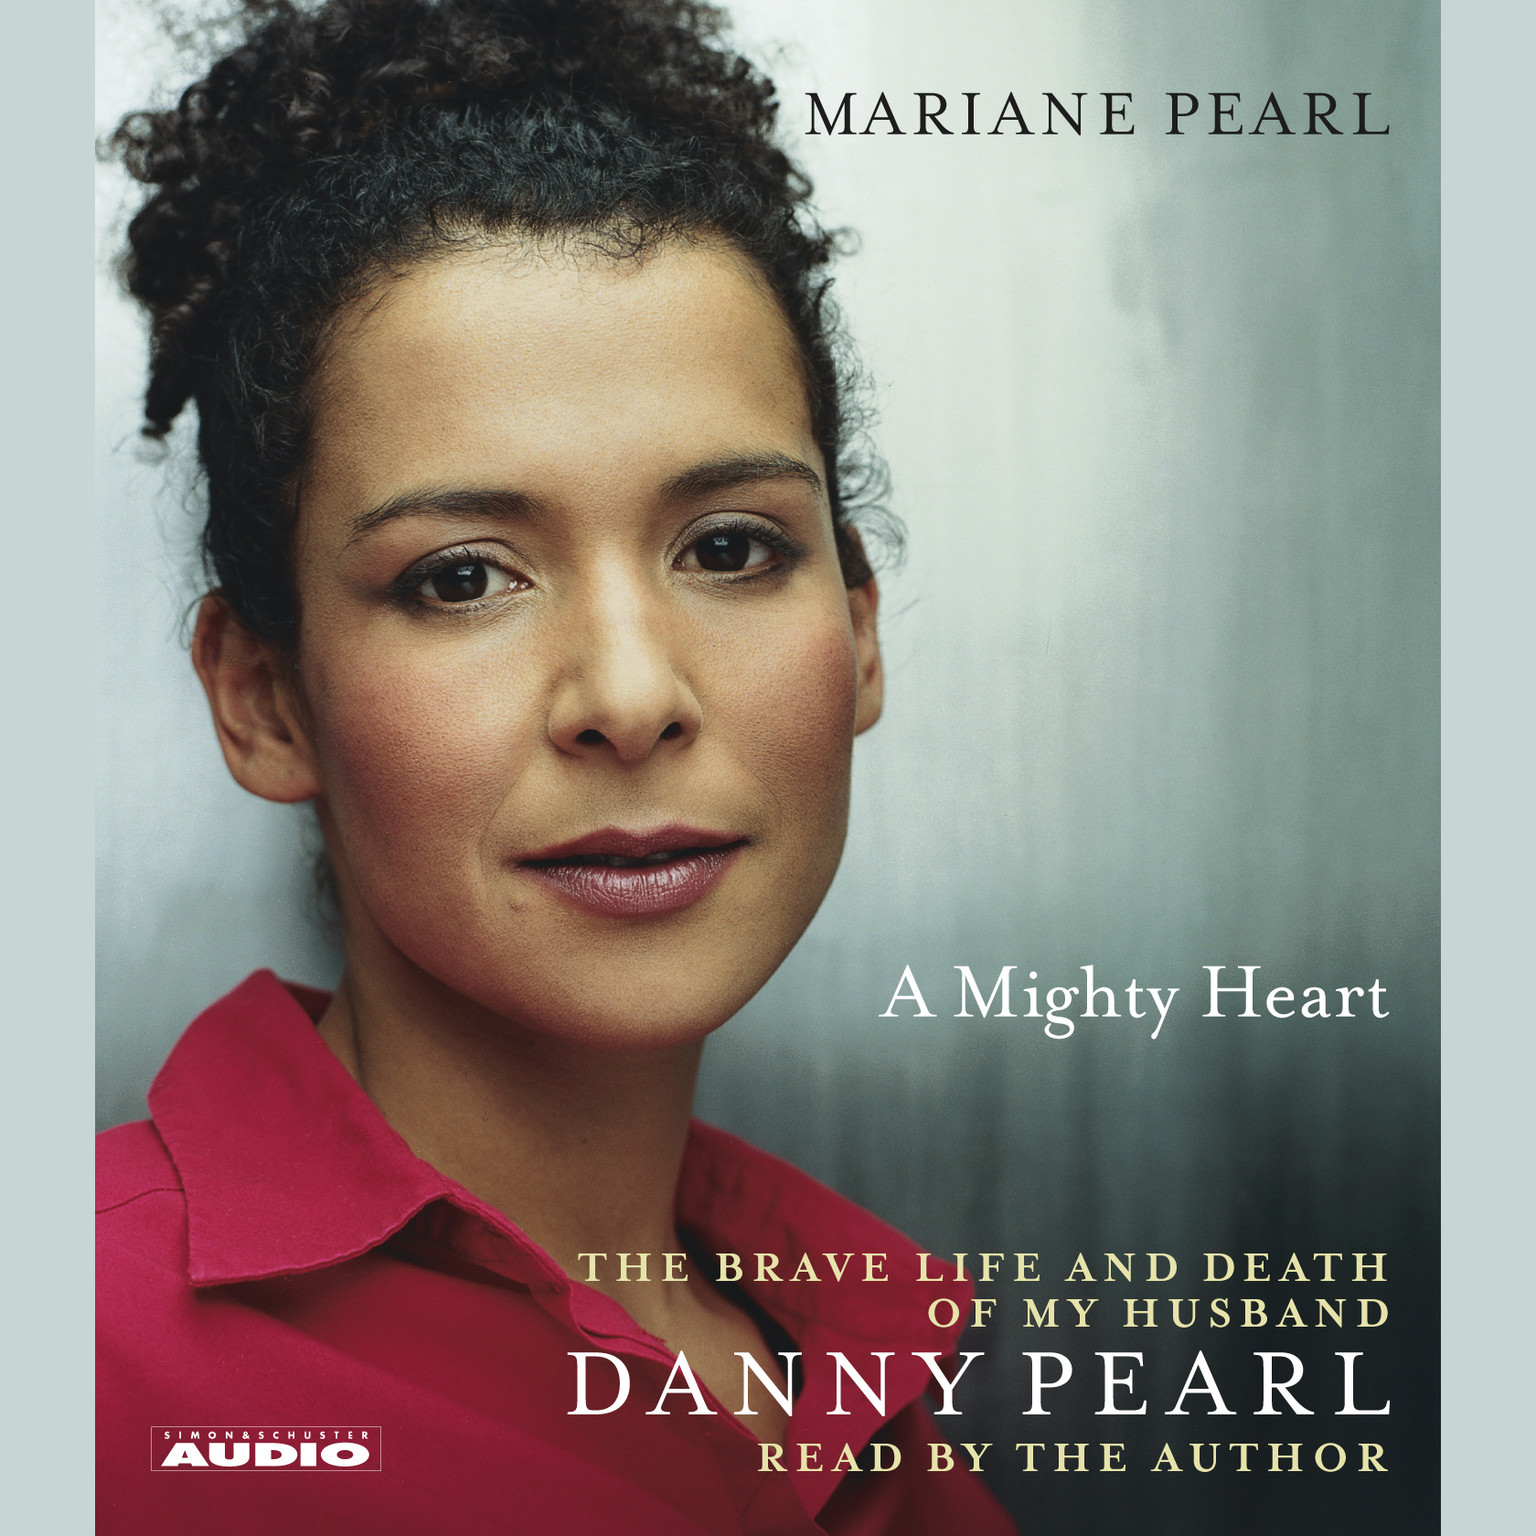 Printable A Mighty Heart: The Brave Life and Death of My Husband Danny Pearl Audiobook Cover Art